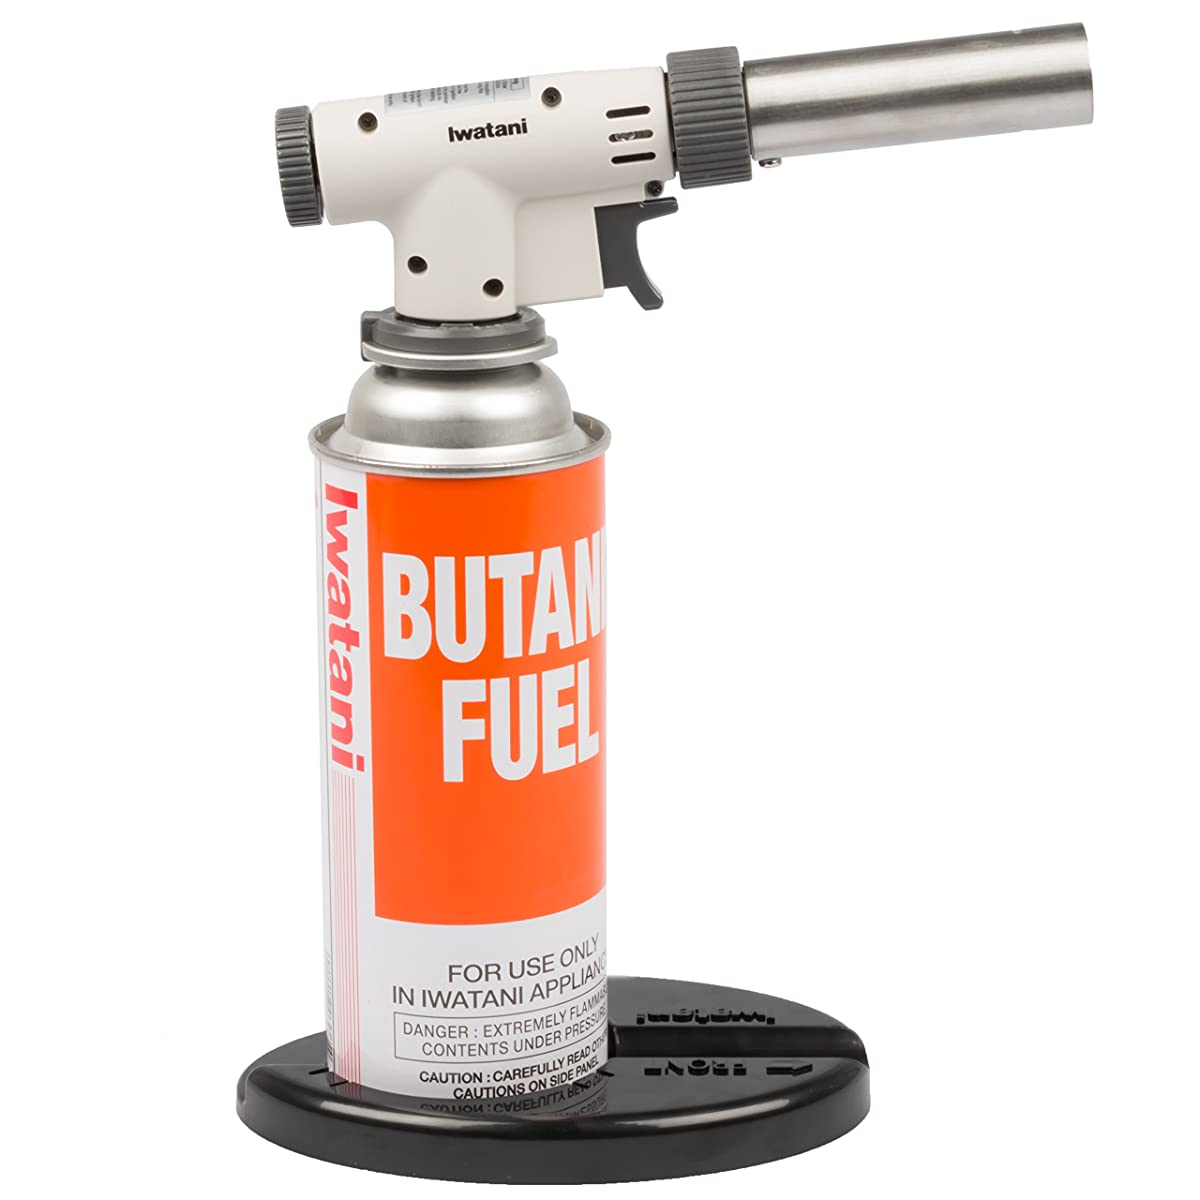 1000 Ideas About Chefs Blow Torch On Pinterest: Professional Butane Cooking Torch